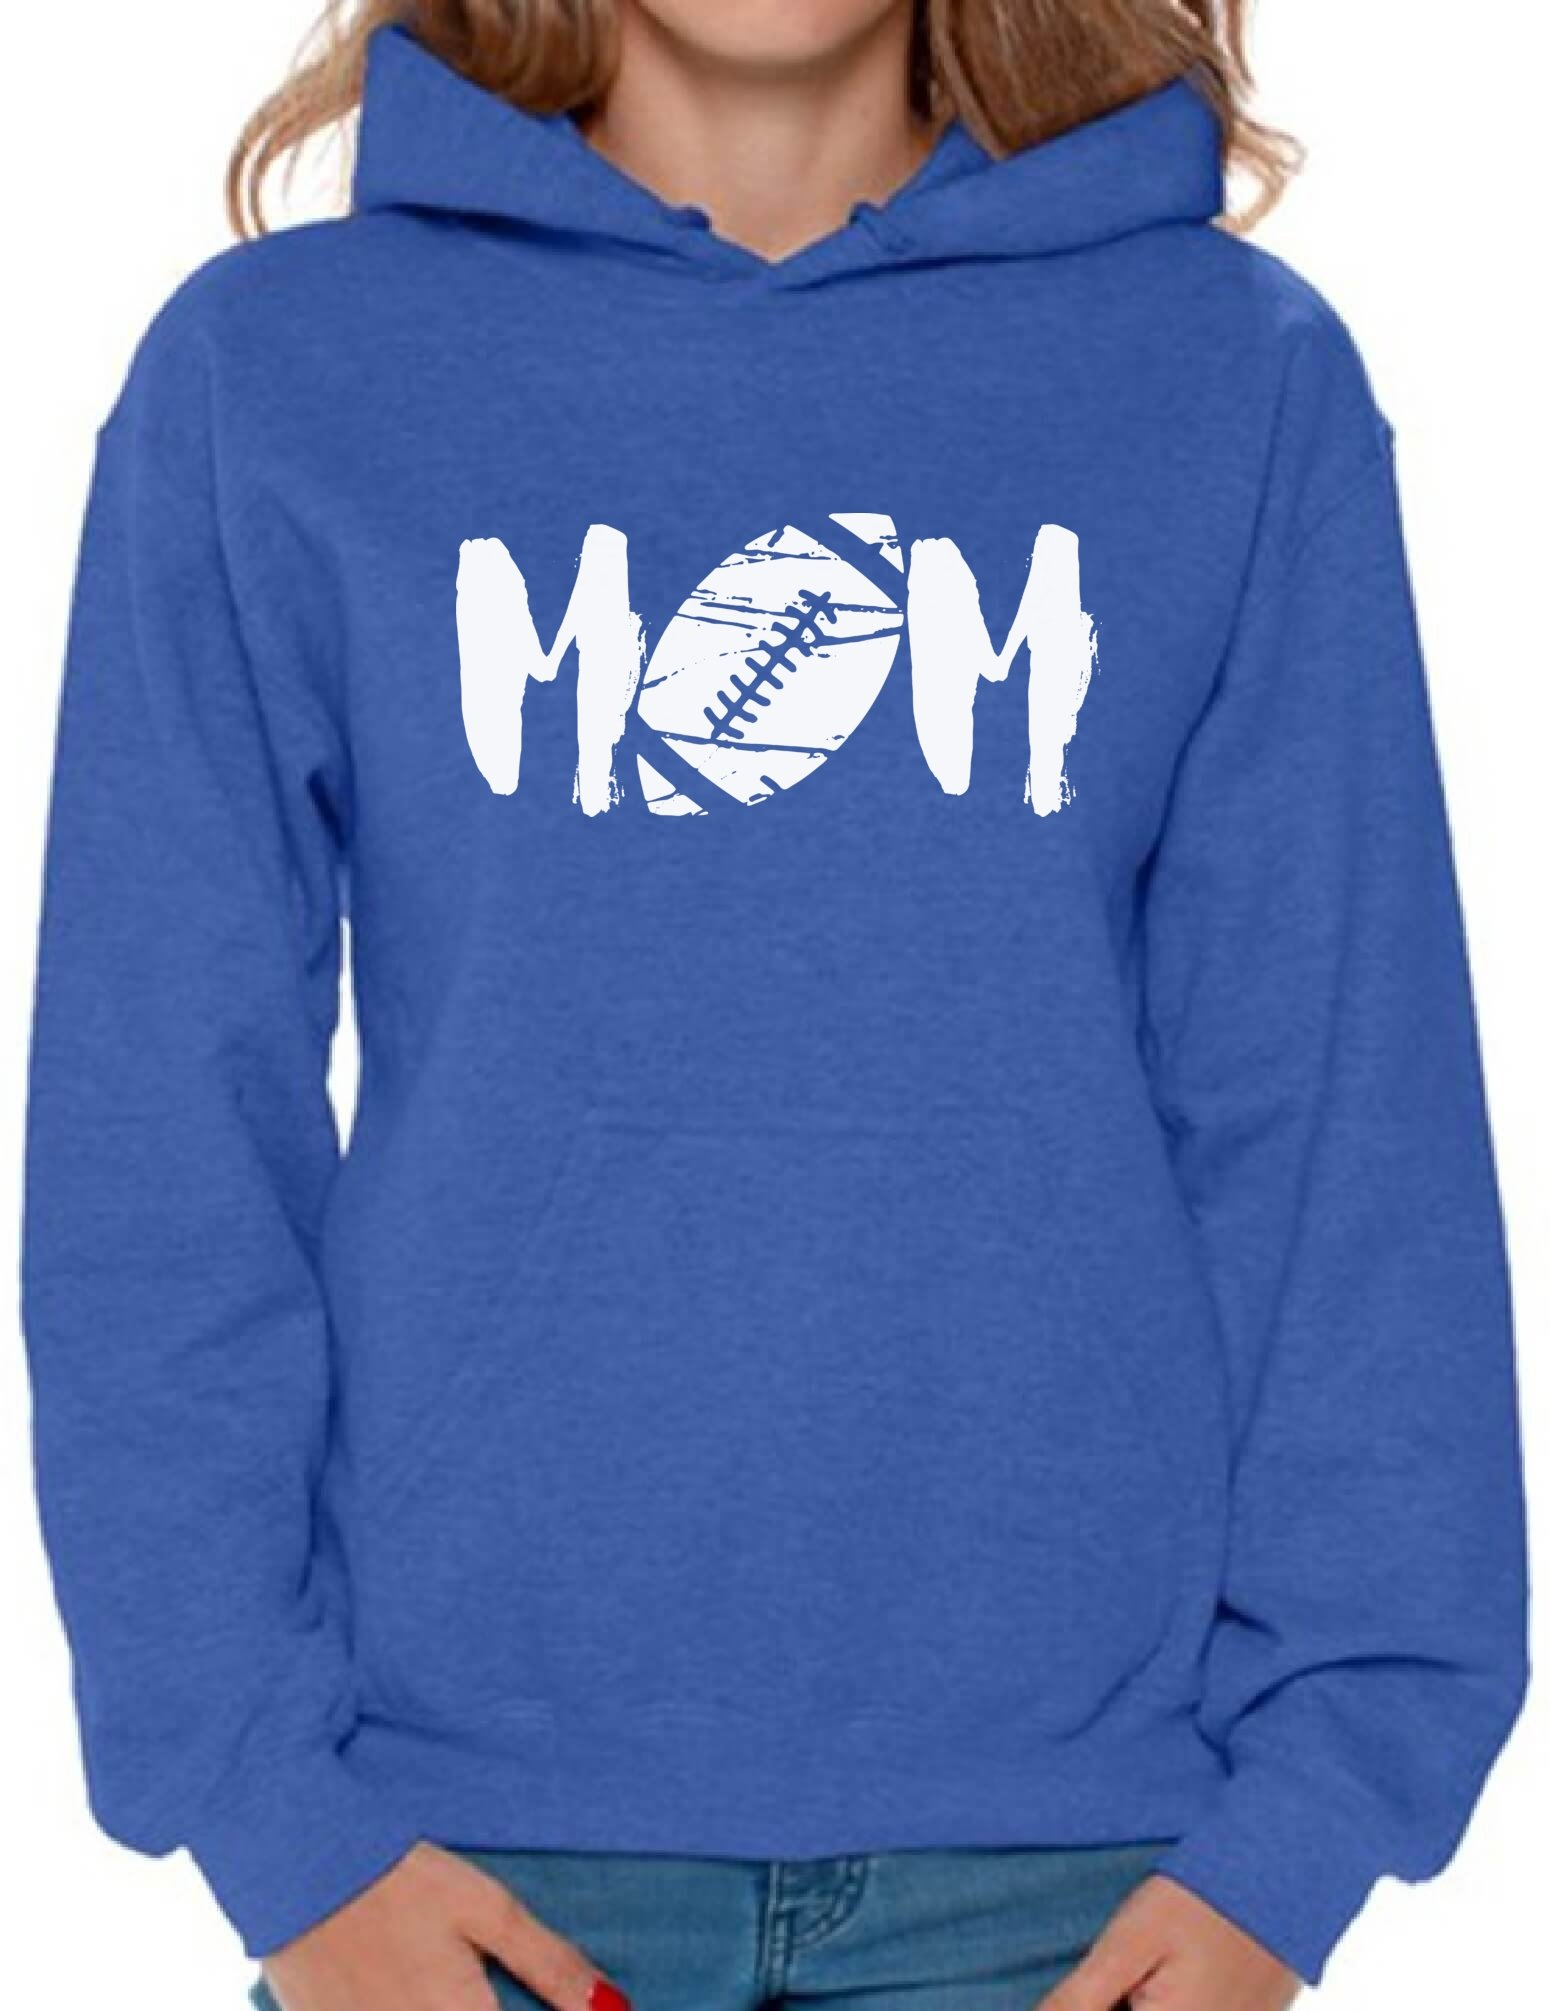 Awkward Styles Women's M-O-M Football Mom Graphic Hoodie Tops White Mother's Day Gift Sports Mom Blue XL